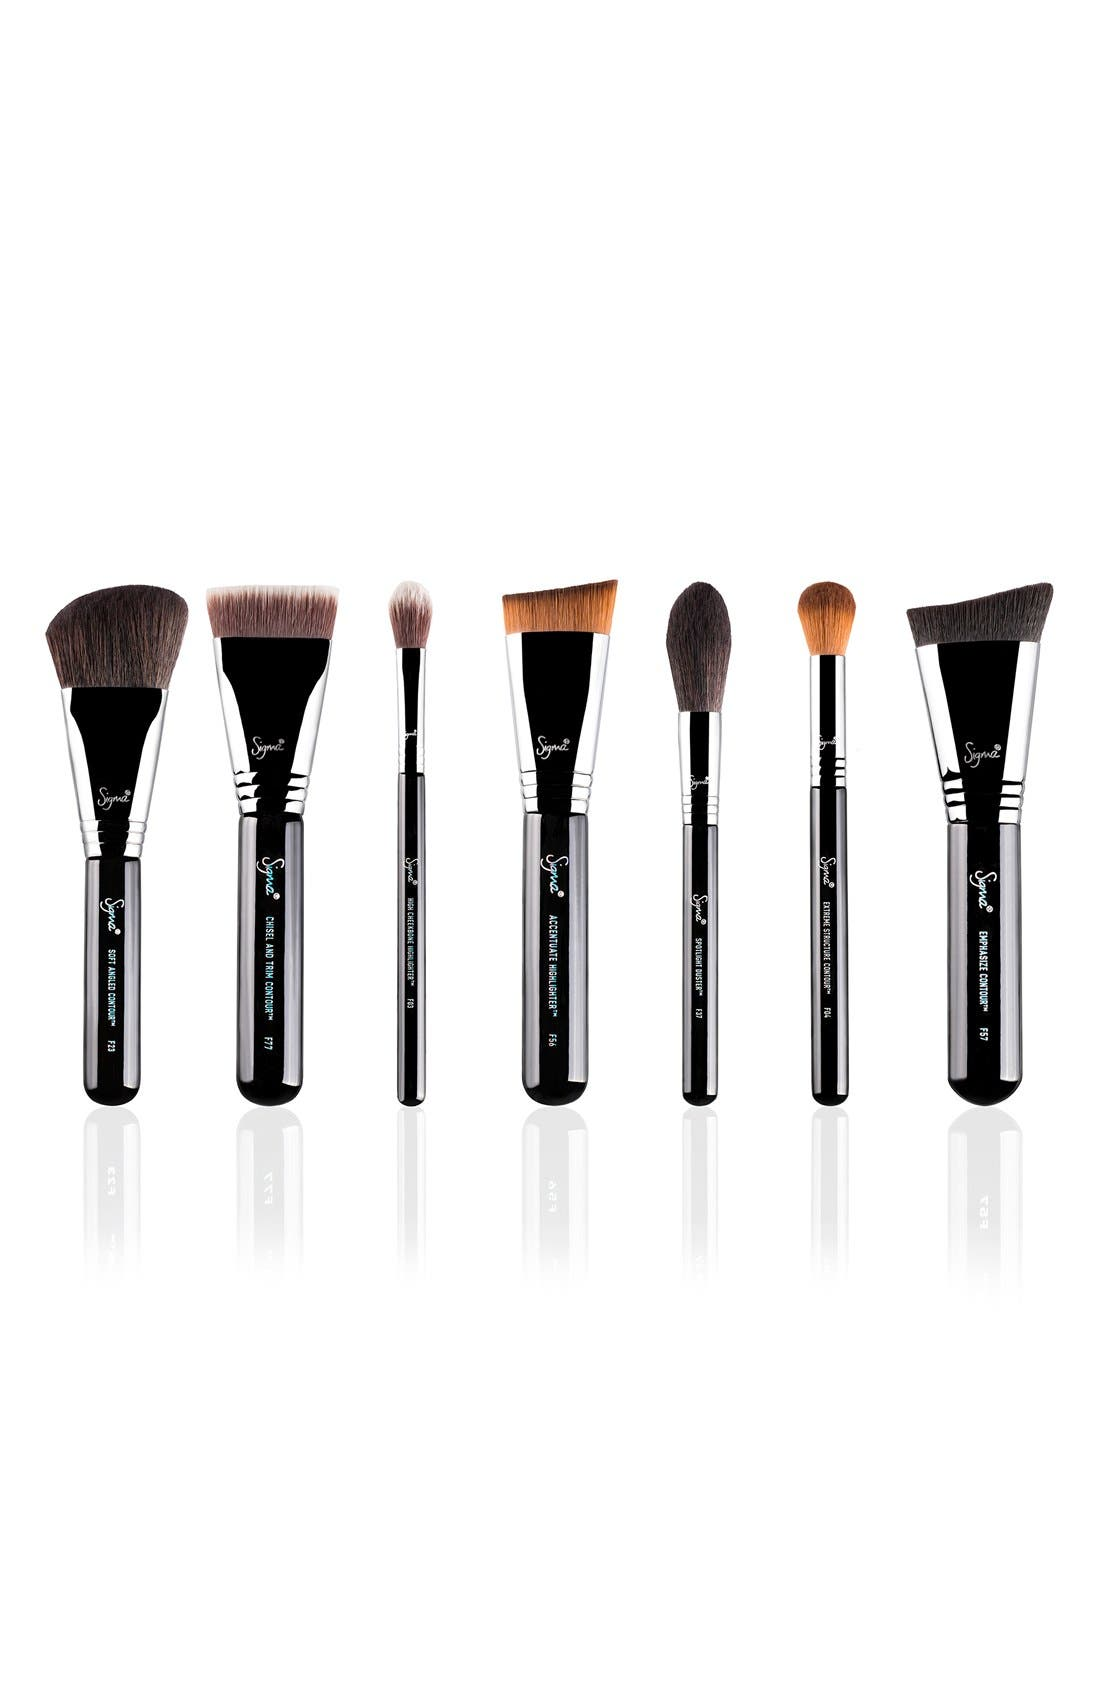 Sigma Beauty Complete Highlight & Contour Luxe Brush Set ($158 Value)